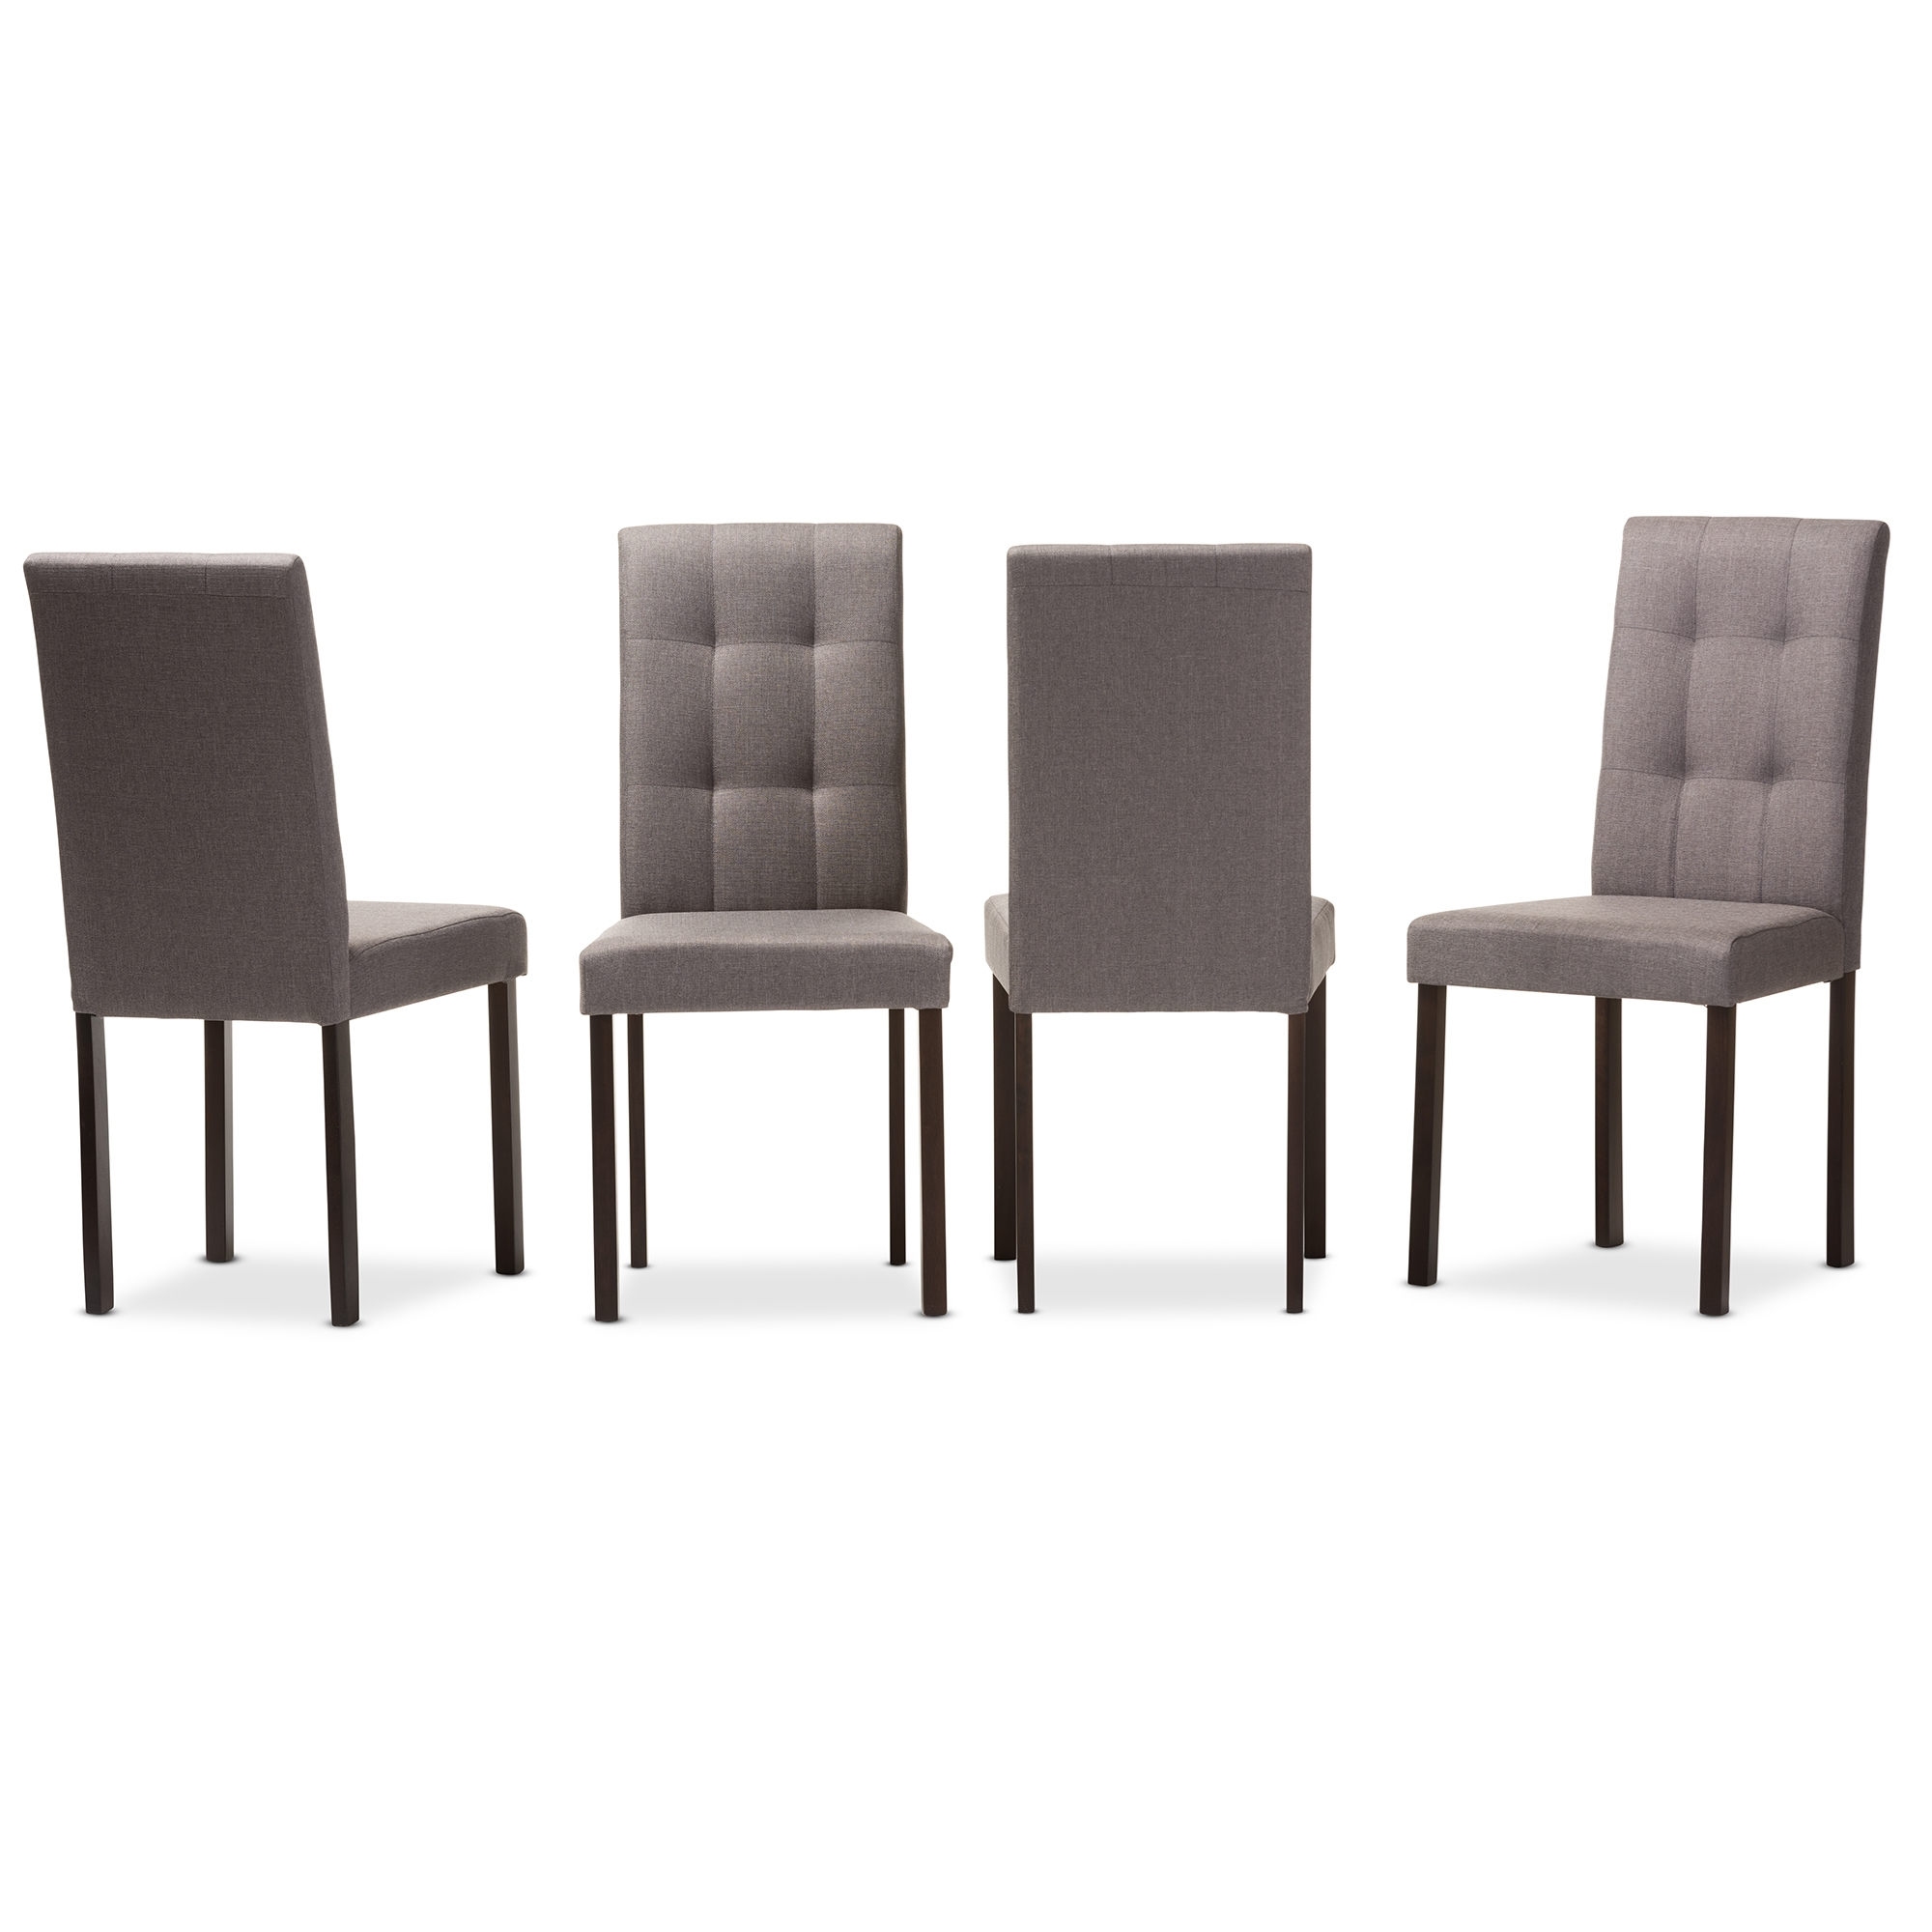 Baxton Studio Andrew Modern And Contemporary Grey Fabric Upholstered  Grid Tufting Dining Chair